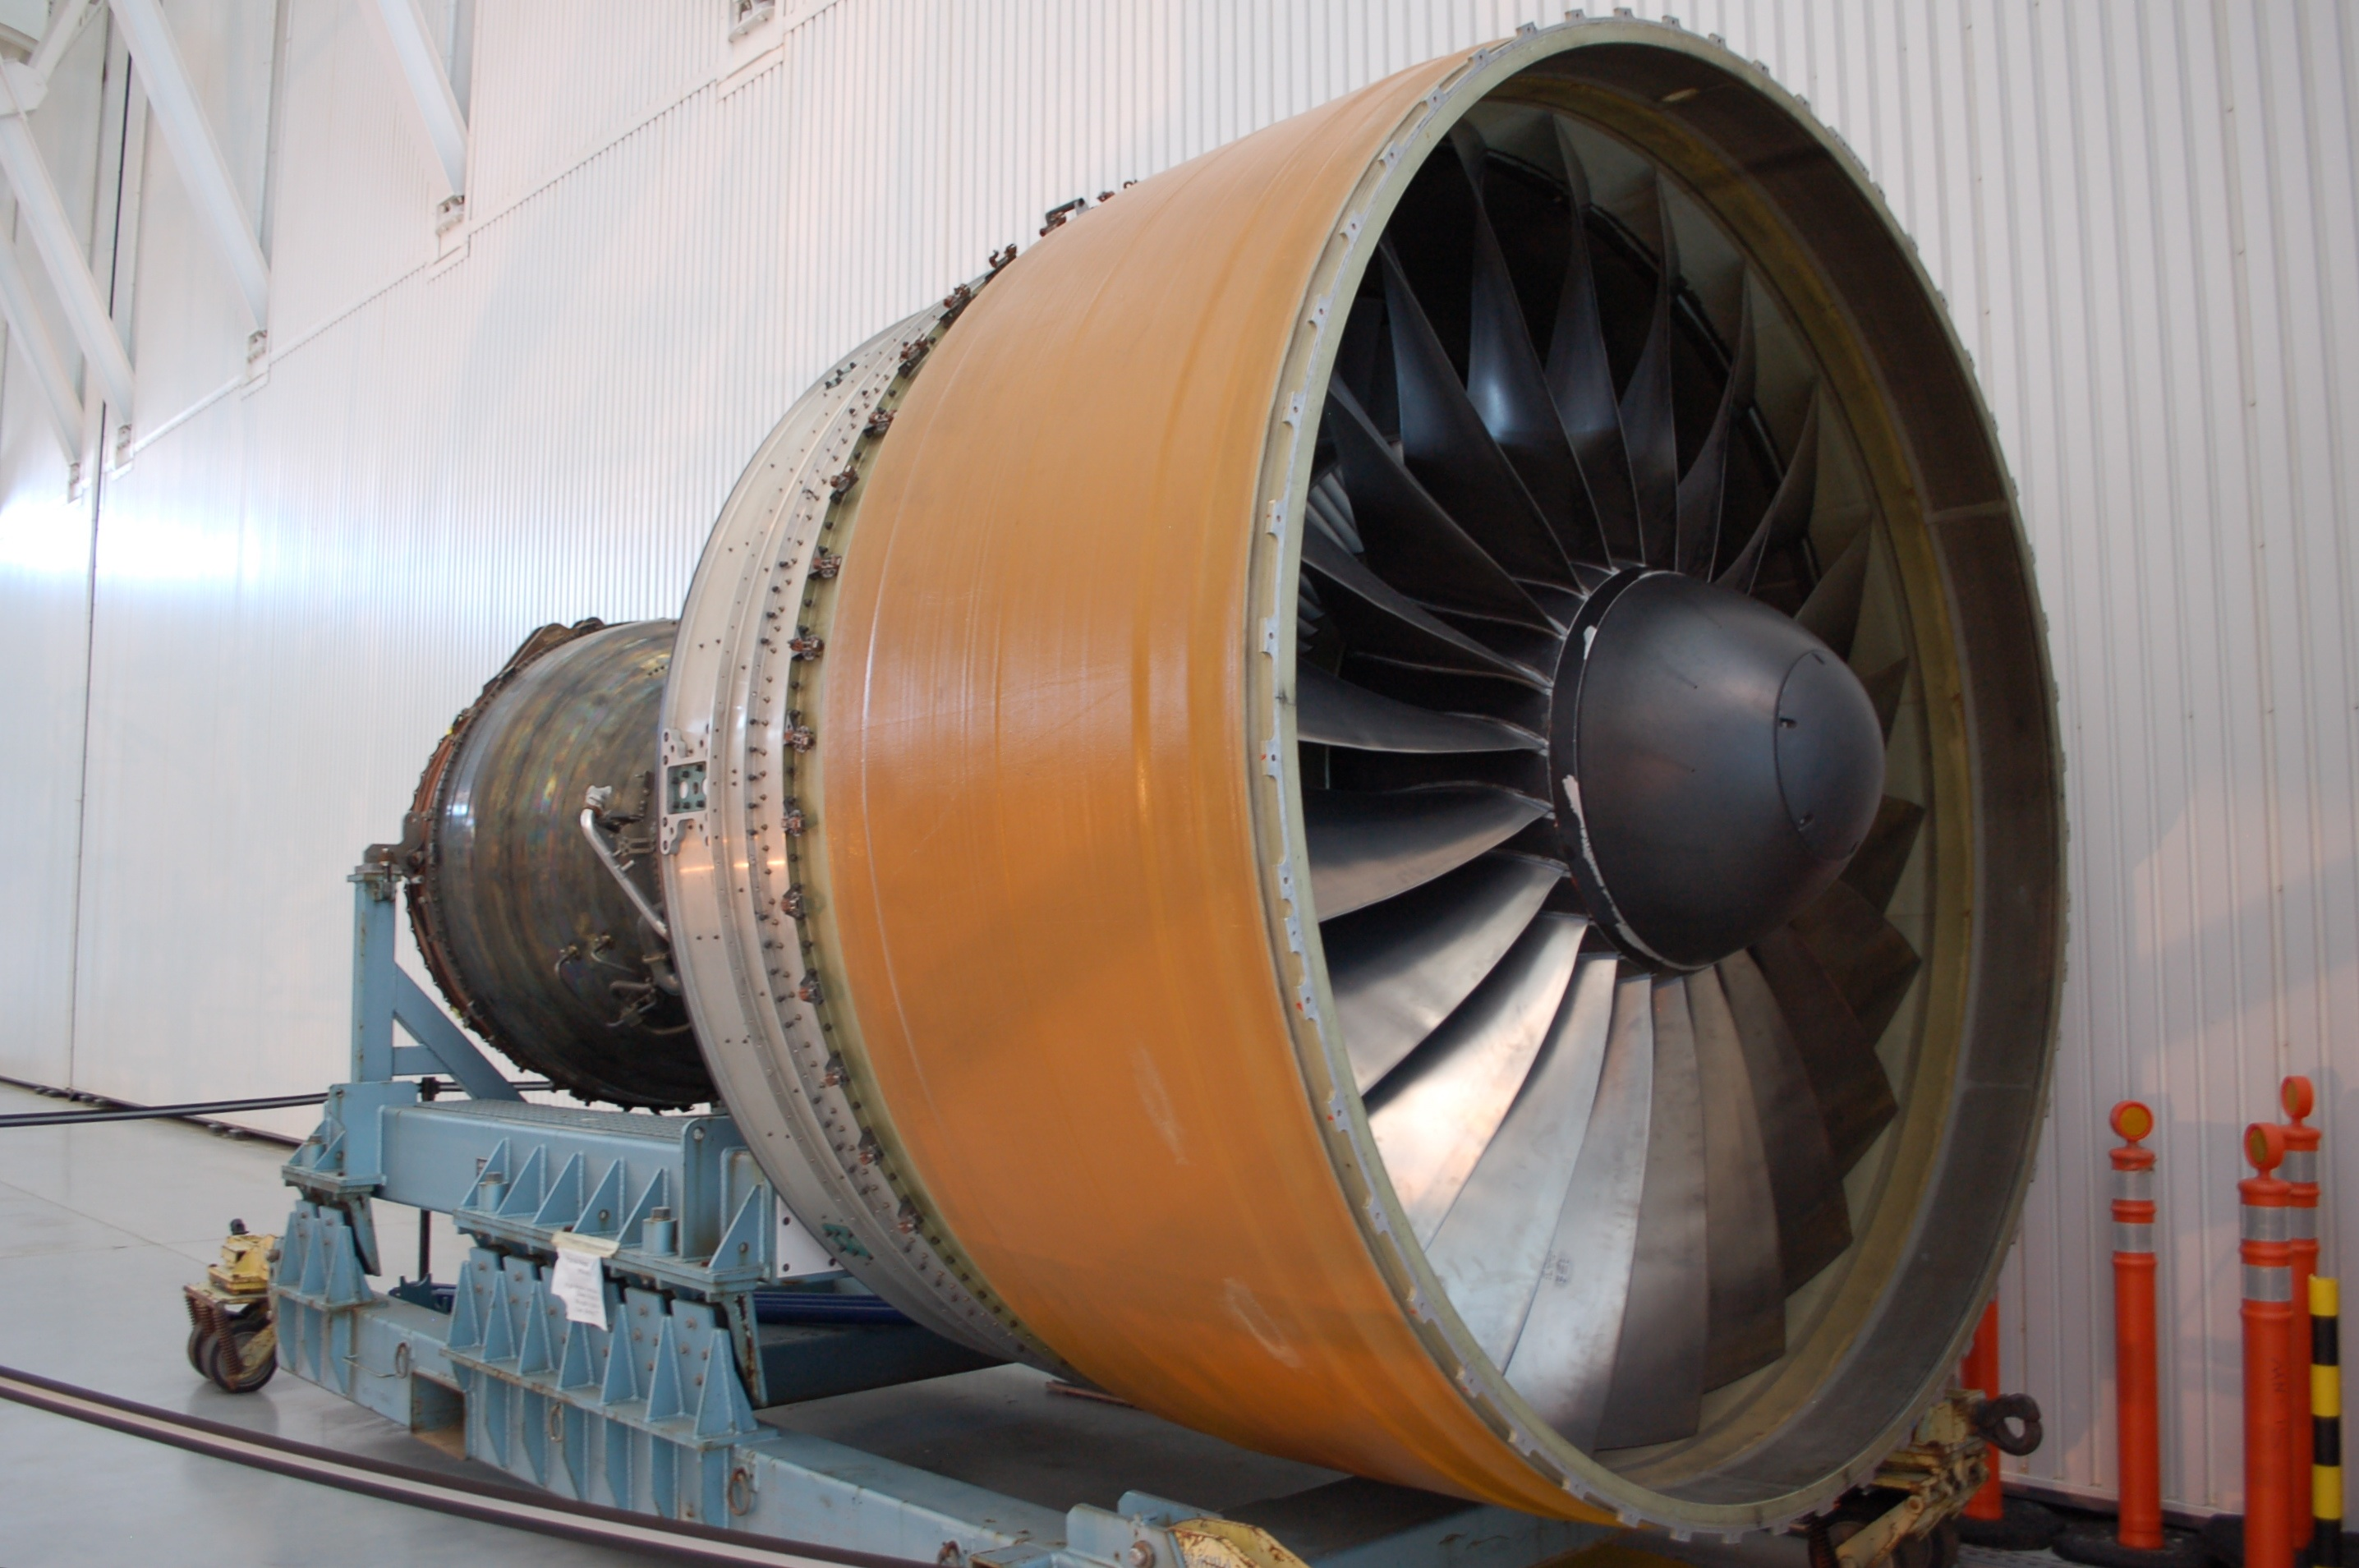 A Pratt & Whitney PW4000 engine for the Boeing 777 sits at the National Air & Space Museum's Udvar-Hazy Center in Virginia.